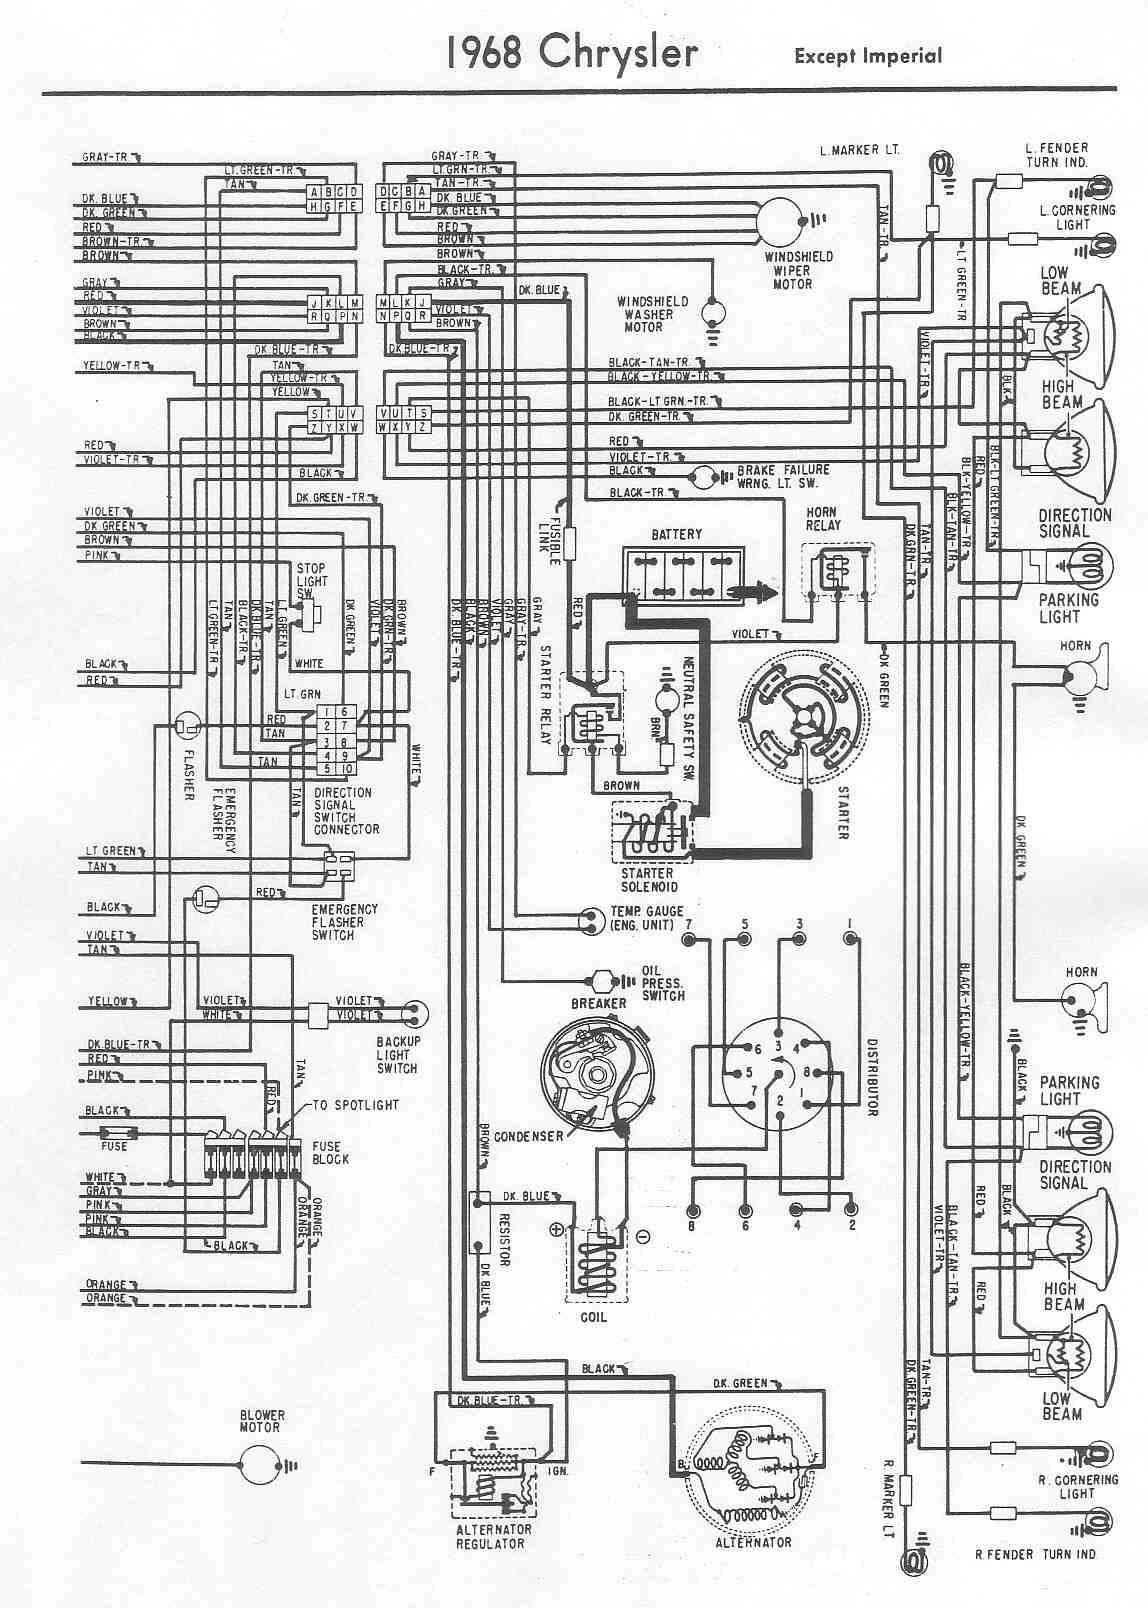 1967 Dodge Coronet Neutral Safety Switch Wiring Diagram F100 Electrical Detailed Wiring1965 Third